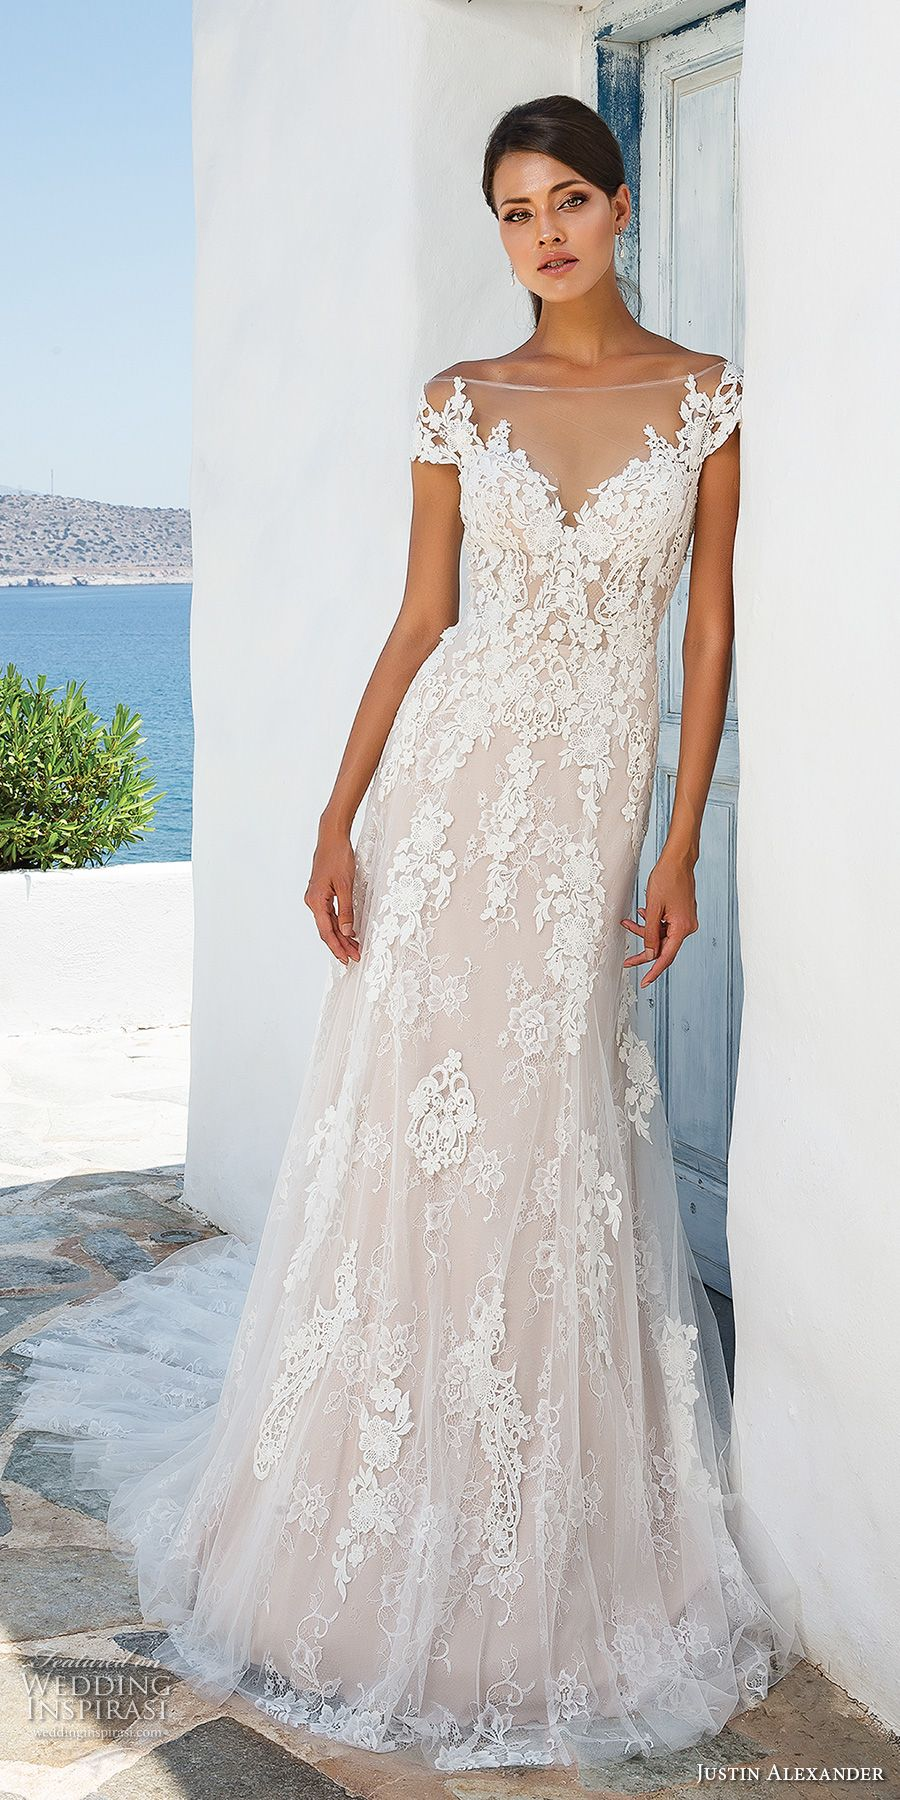 Justin alexander wedding dresses  Justin Alexander  Wedding Dresses  Oh do I do  Pinterest